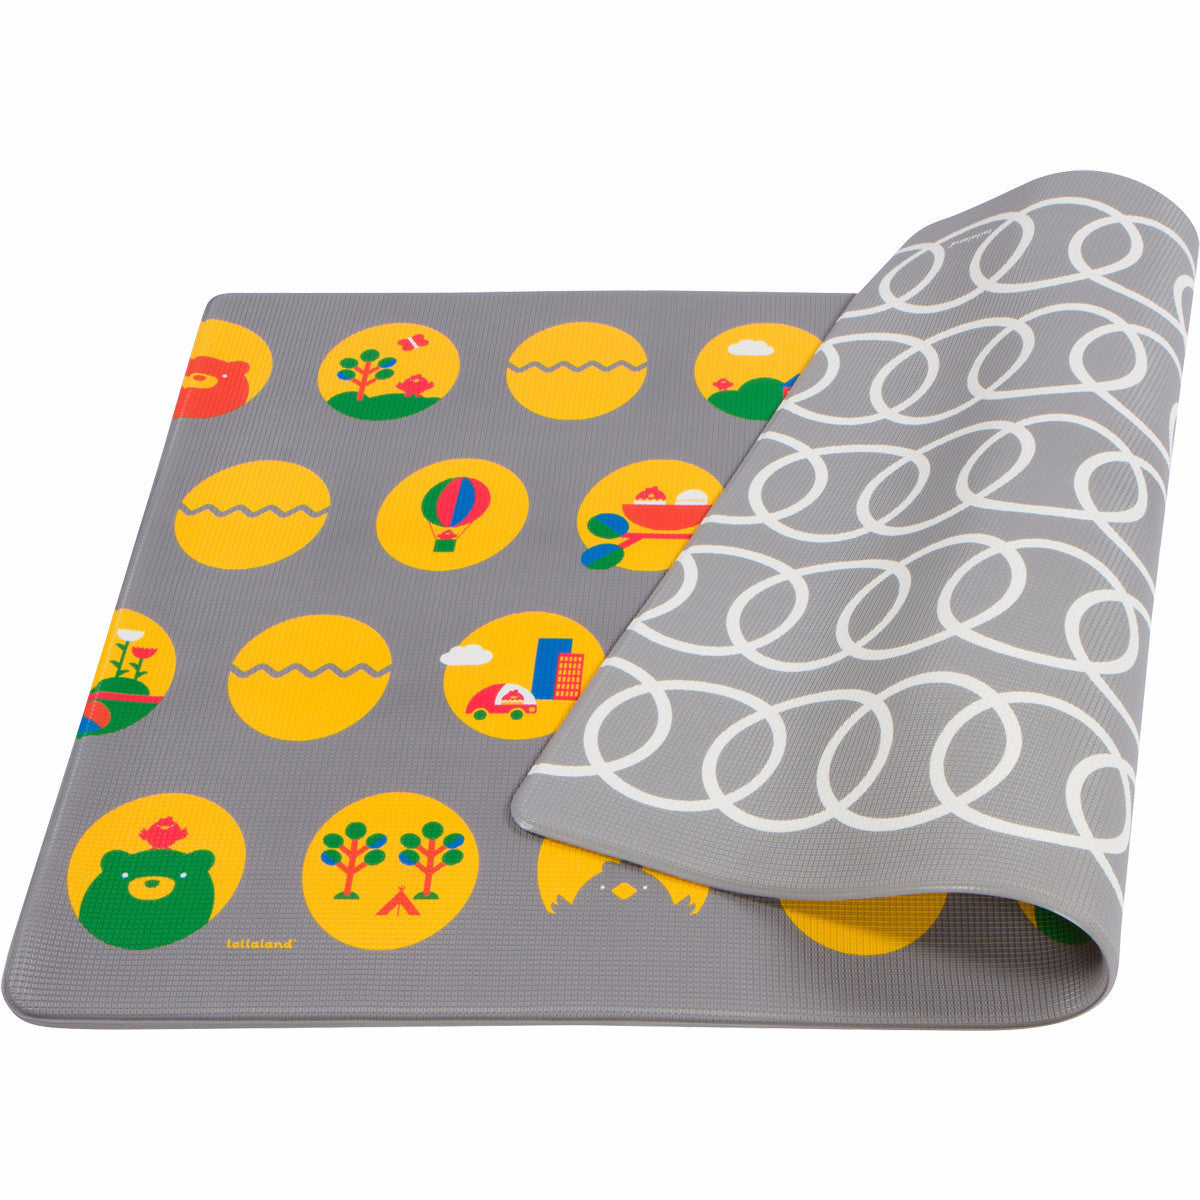 lollaland play mat reversible ultracushioned nontoxic  lollaland -  lollaland play mat reversible ultracushioned easytoclean